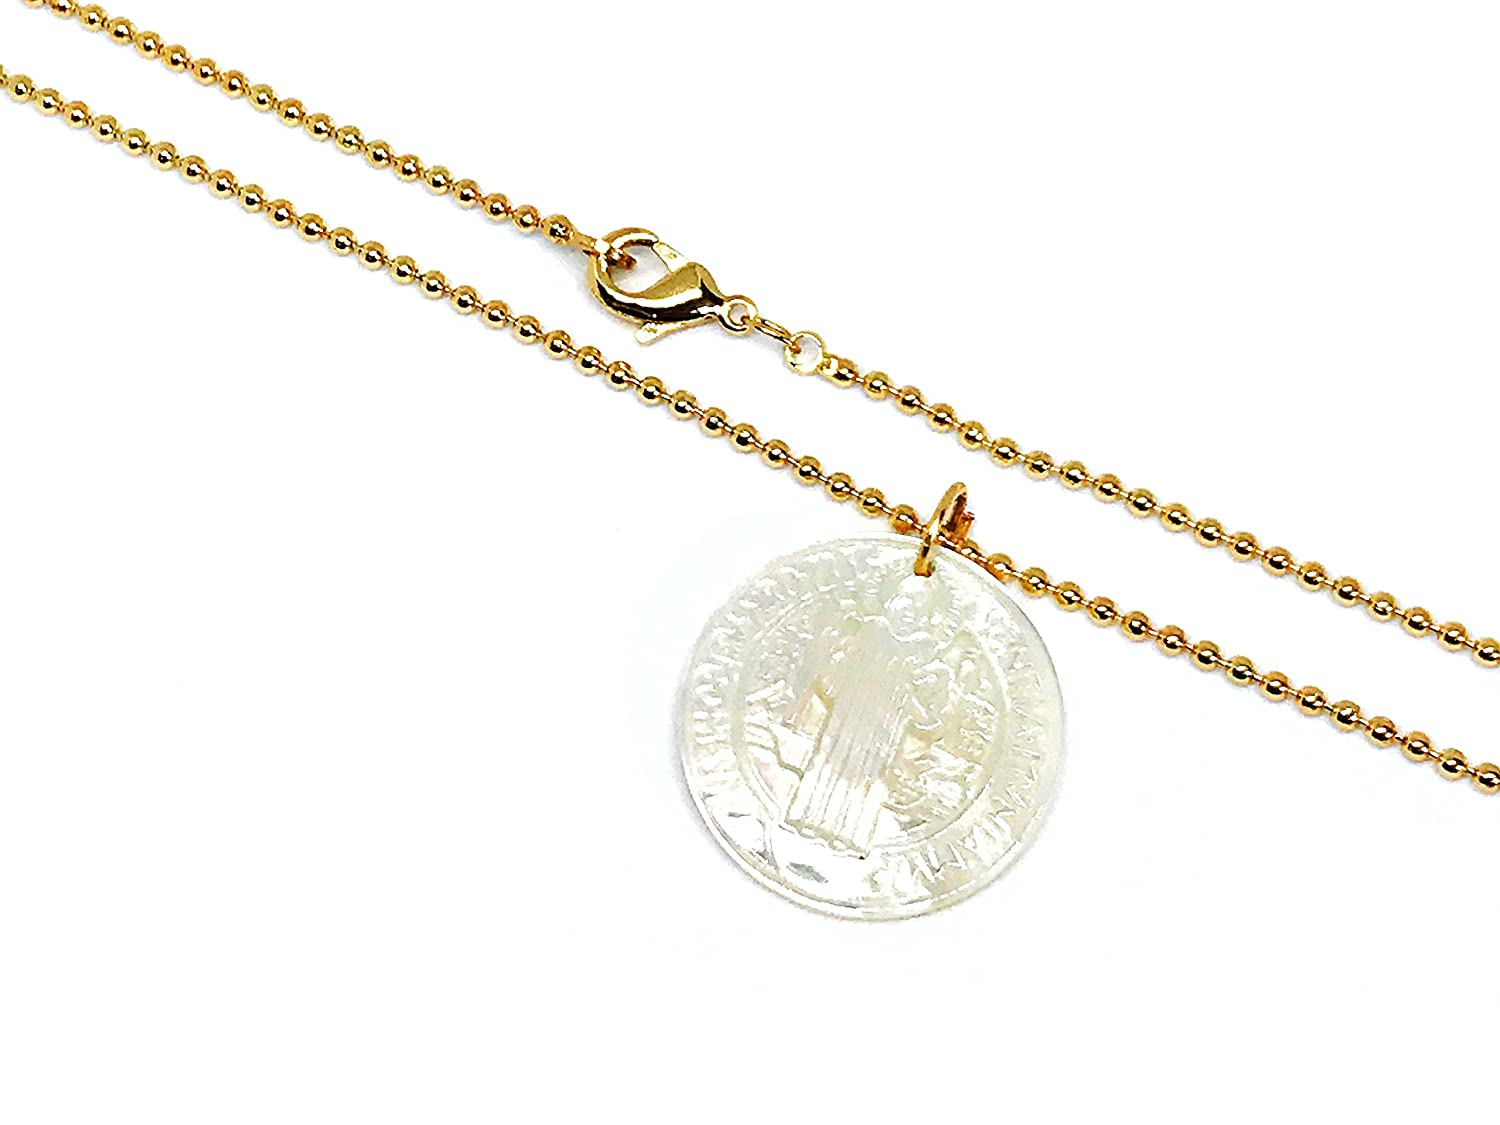 LESLIE BOULES Saint Benedict Mother of Pearl Medal Necklace 18K Gold Plated Chain